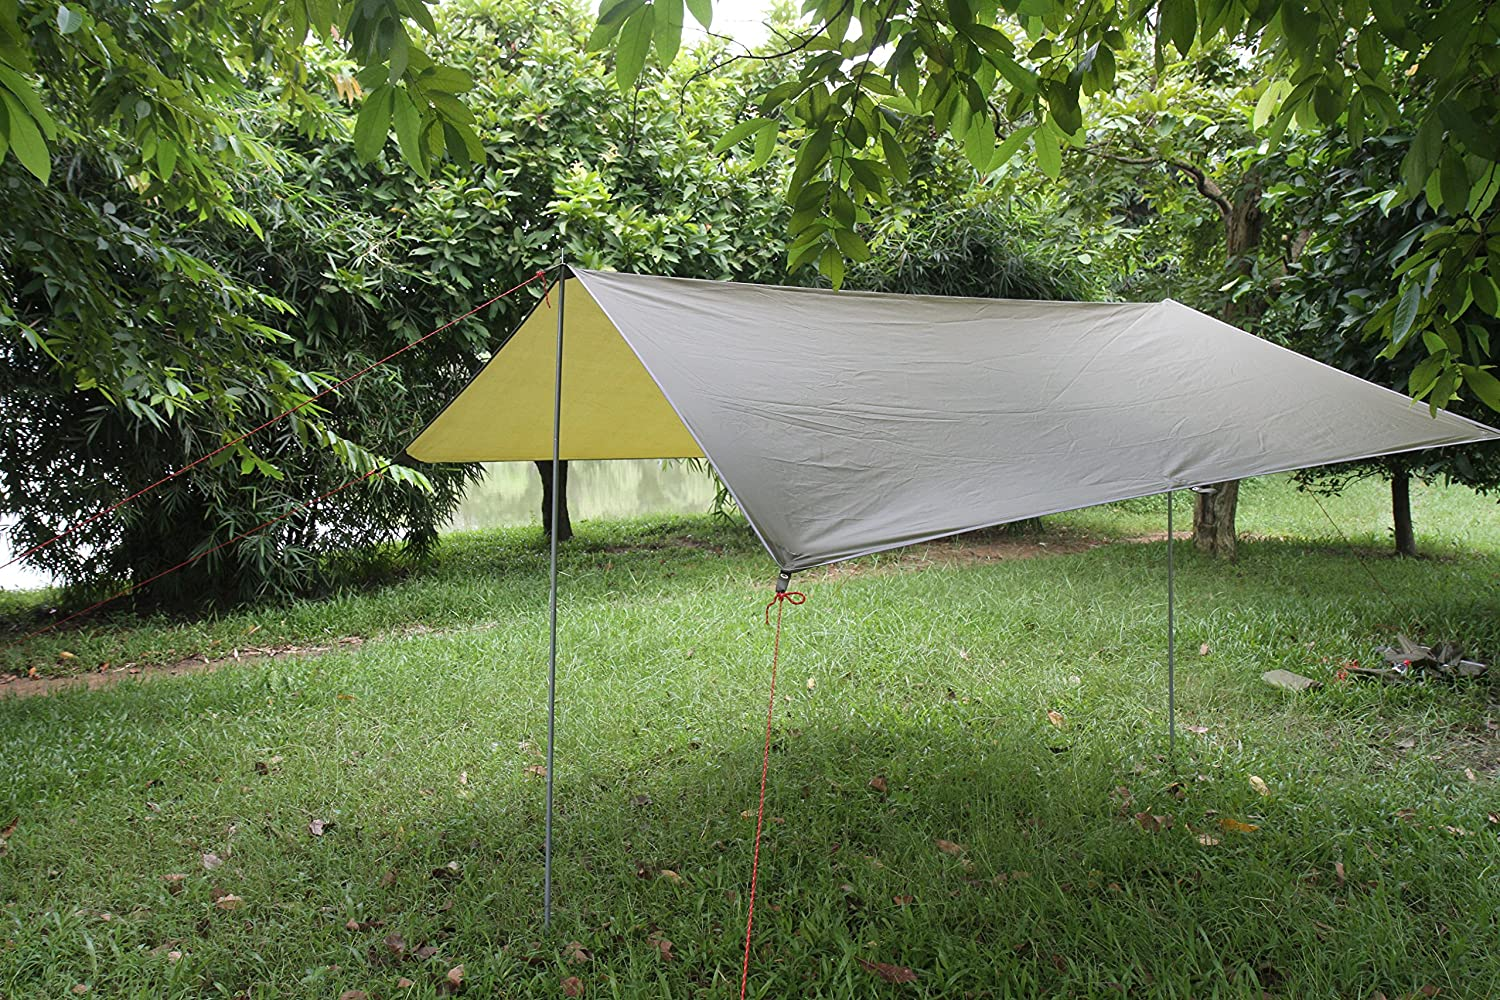 Waterproof Survival Tarp Shelter Portable Lightweight Suitable for 3 to 4 Person 9.5 by 9.5 Foot with 6 Rings As Outdoor Rain Tarp Tent Tarp Shelter Sun Shade Tent Hammocks Camping Shelter for Camping